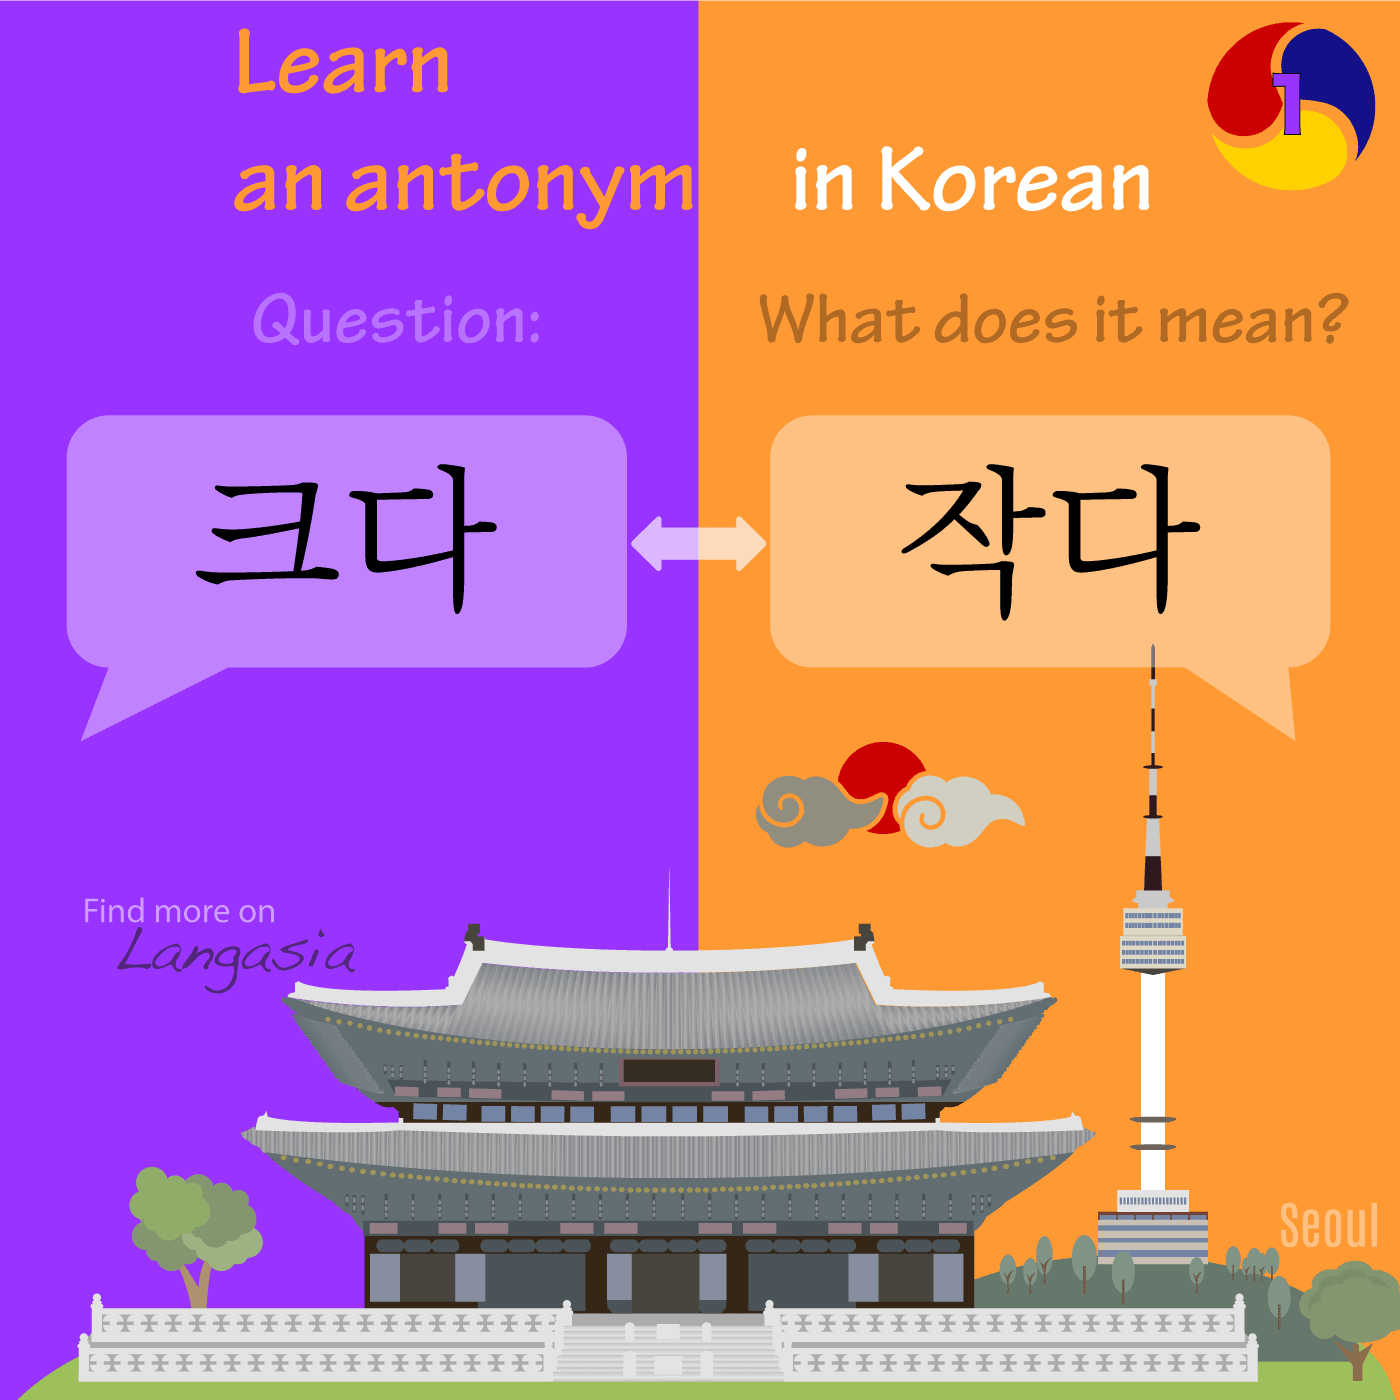 Antonym in Korean - 작다 to be small VS 크다 to be big